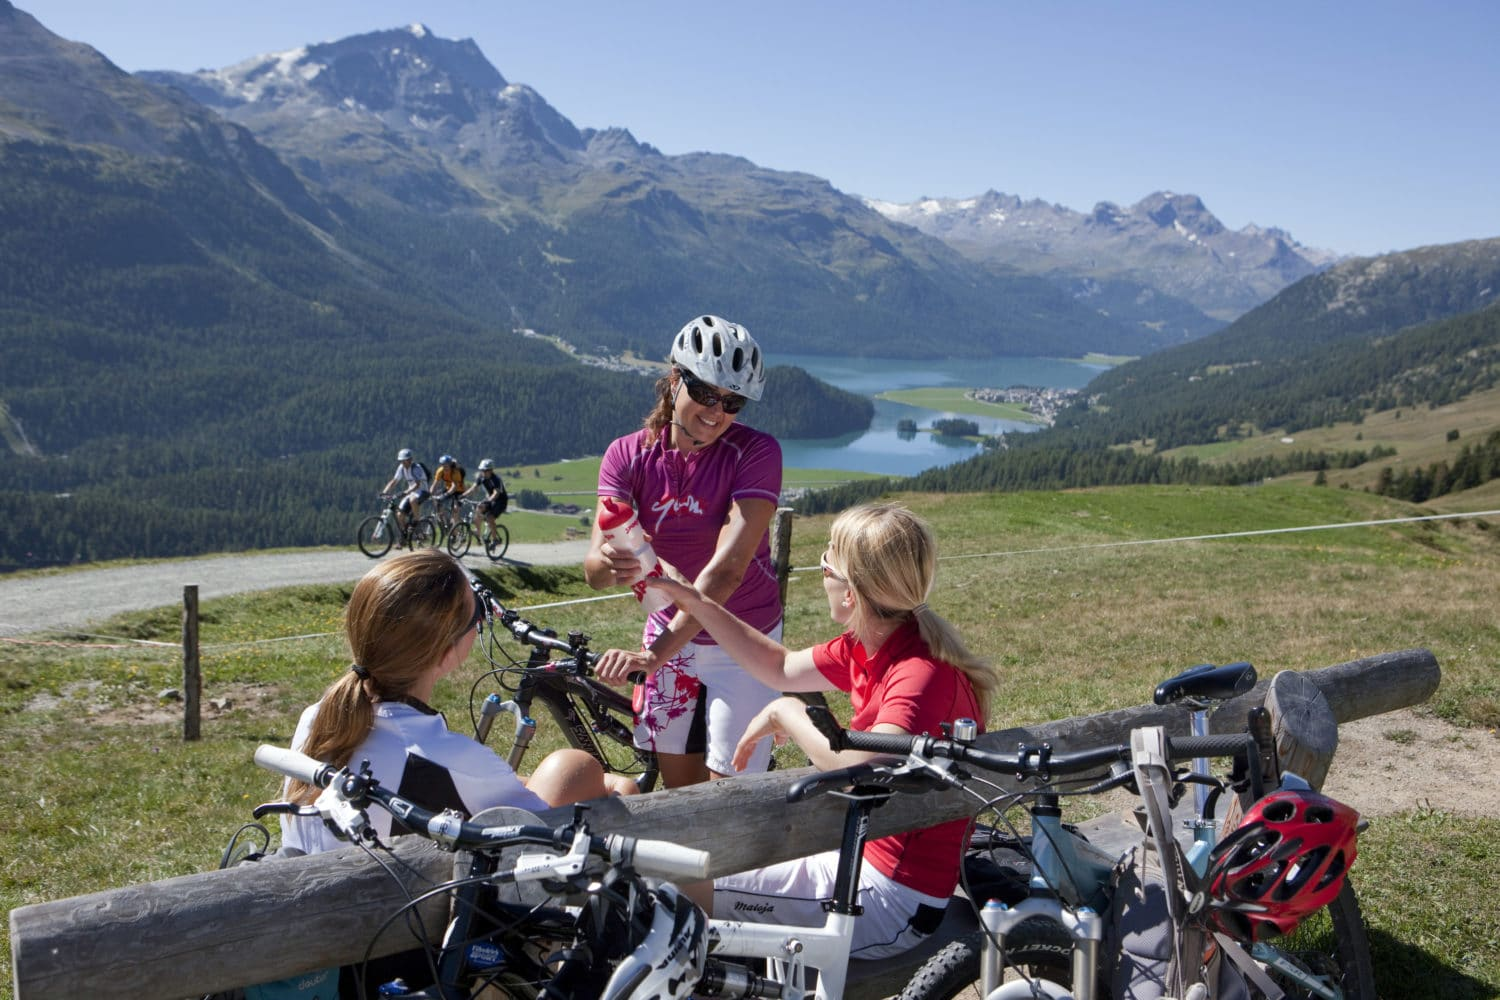 ENGADIN ST. MORITZ - Damengruppe mit Mountainbikes bei einer vitalisierenden Pause, im Hintergrund kommt eine Gruppe Maenner auf Mountainbikes, Engadiner Seen, Silvaplana, Piz Corvatsch (3451m) und Piz da la Margna (3159m). Group of women with mountain bikes taking a refreshing break. In background an approaching group of men on mountain bikes, Engadin lakes, Silvaplana, Piz Corvatsch (3,451m) and Piz da la Margna (3,159m). Gruppo di signore in mountainbike durante una pausa rivitalizzante. Sullo sfondo: gruppo di biker maschi in arrivo, laghi engadinesi, Silvaplana, Piz Corvatsch (3451m) e Piz da la Margna (3159m). Copyright by: ENGADIN St. Moritz By-line: swiss-image.ch/Christof Sonderegger